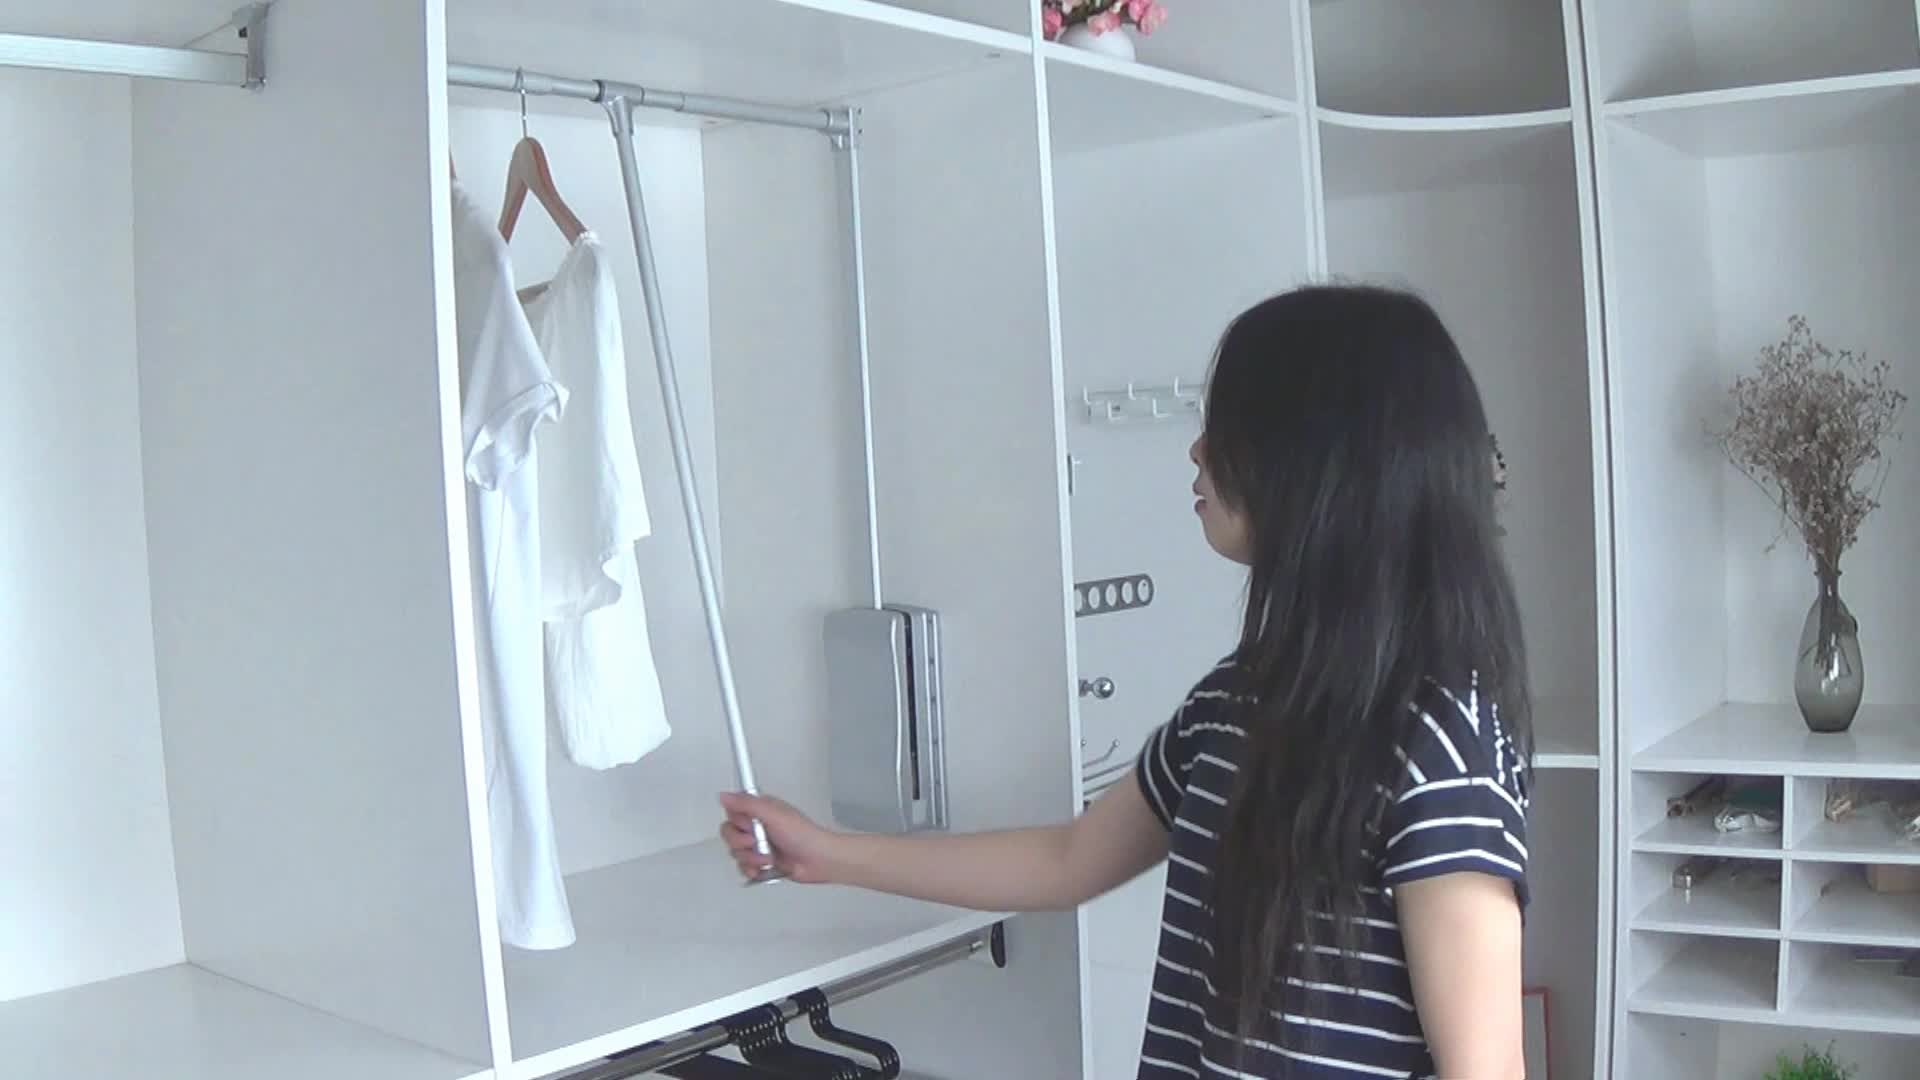 Ikea Wardrobe Valet Pull Down Clothes Rack | Bindu Bhatia Astrology